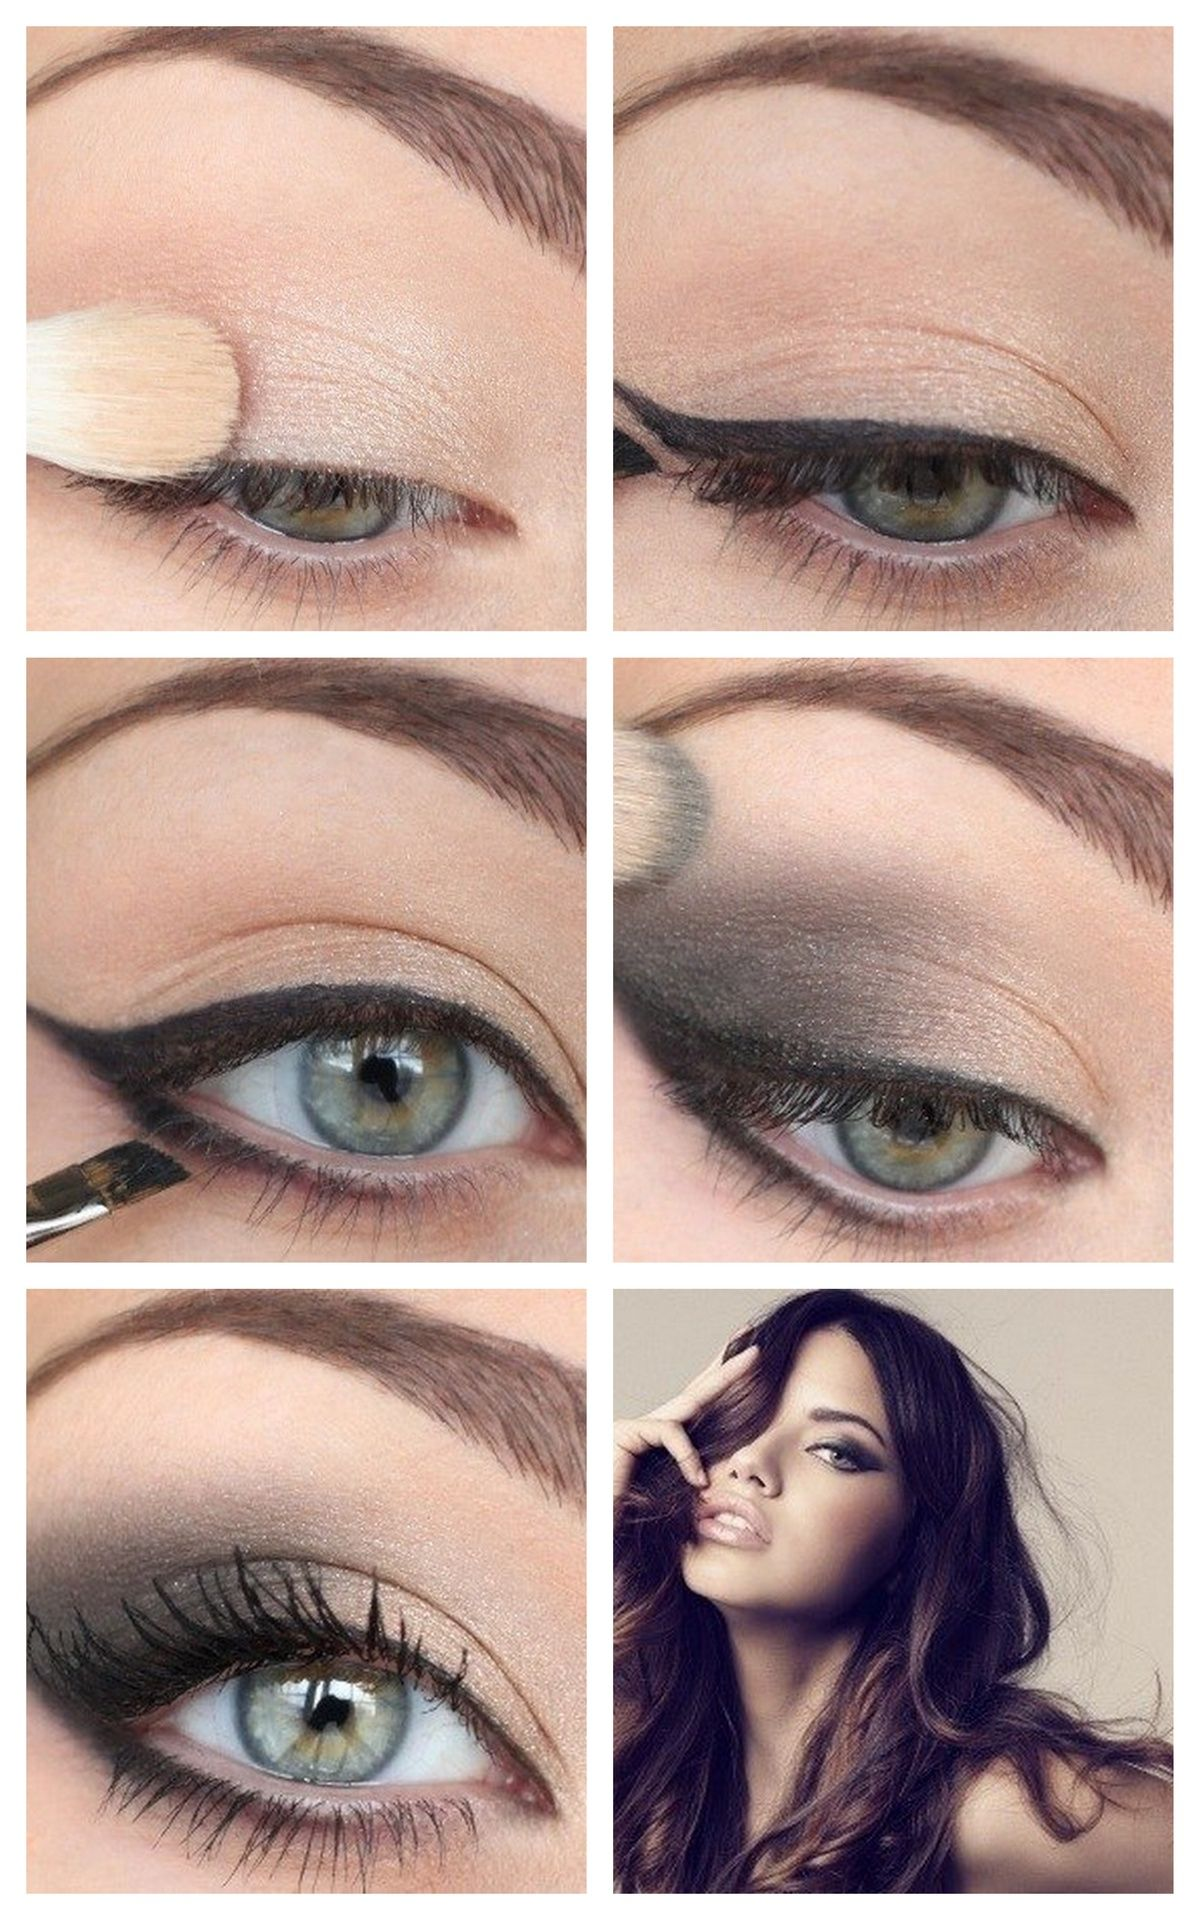 pin by talerie stemple on beauty tips | smoky eye makeup